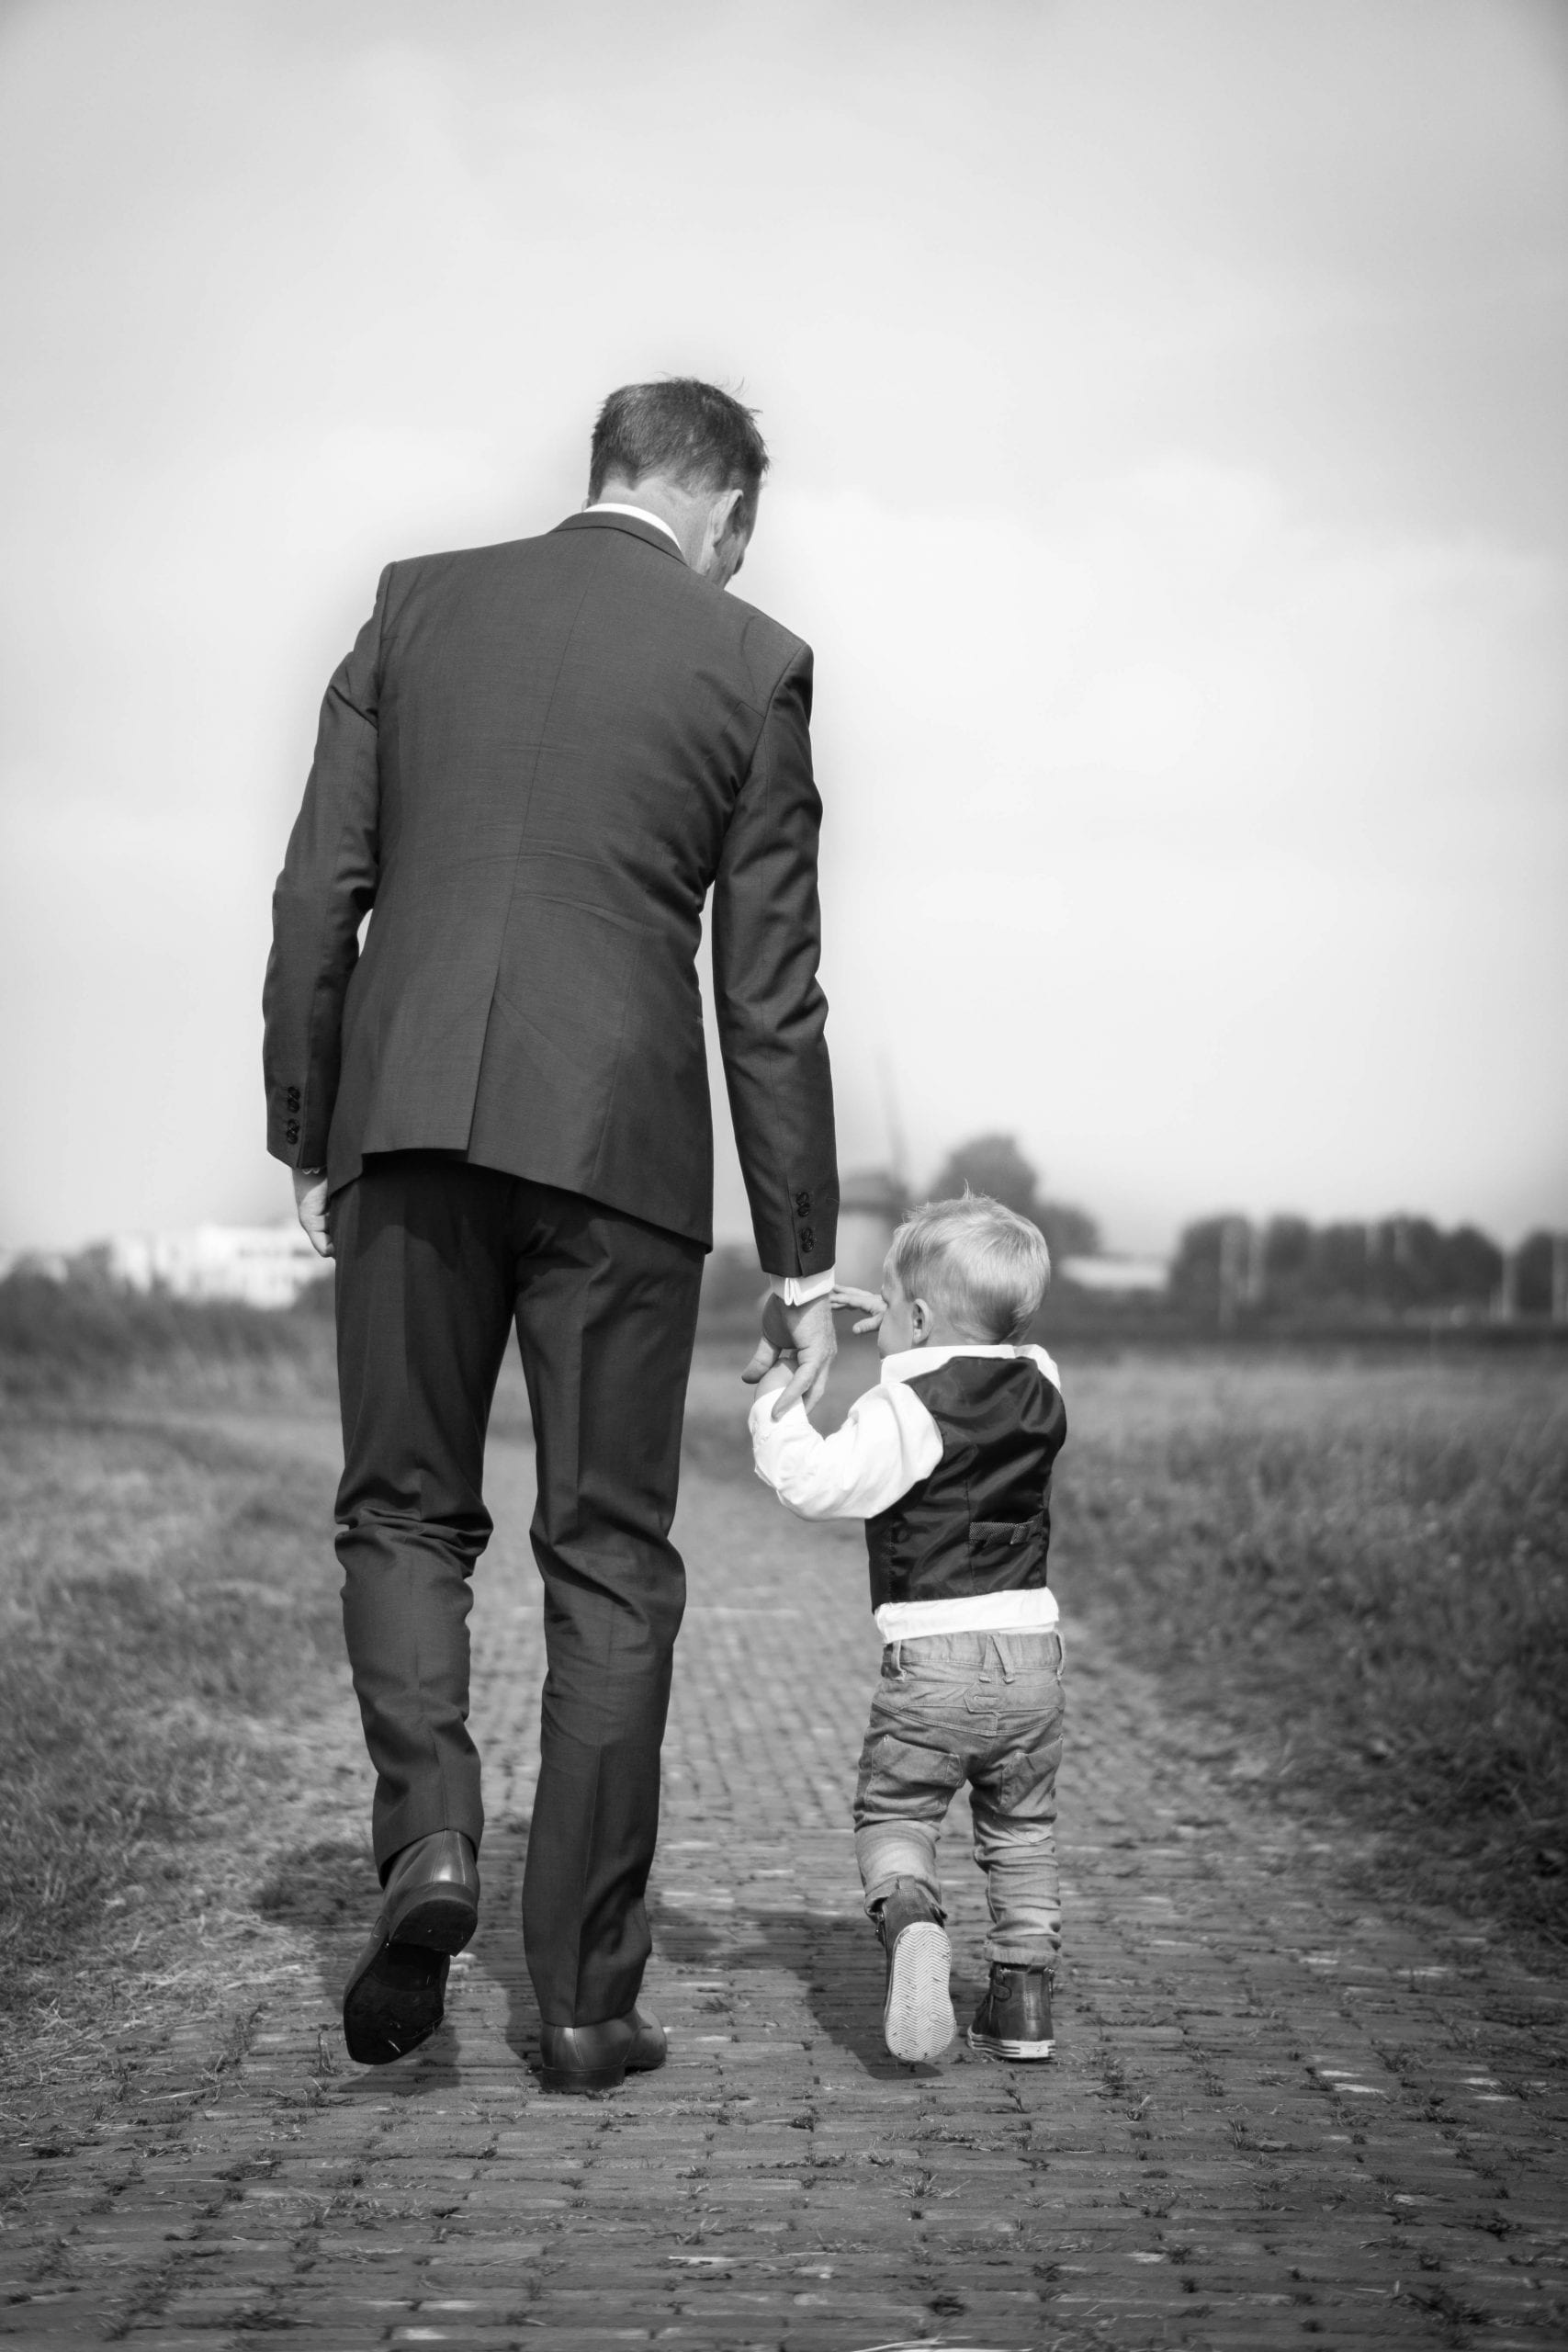 Custom Link father-walking-with-small-son-black-and-white